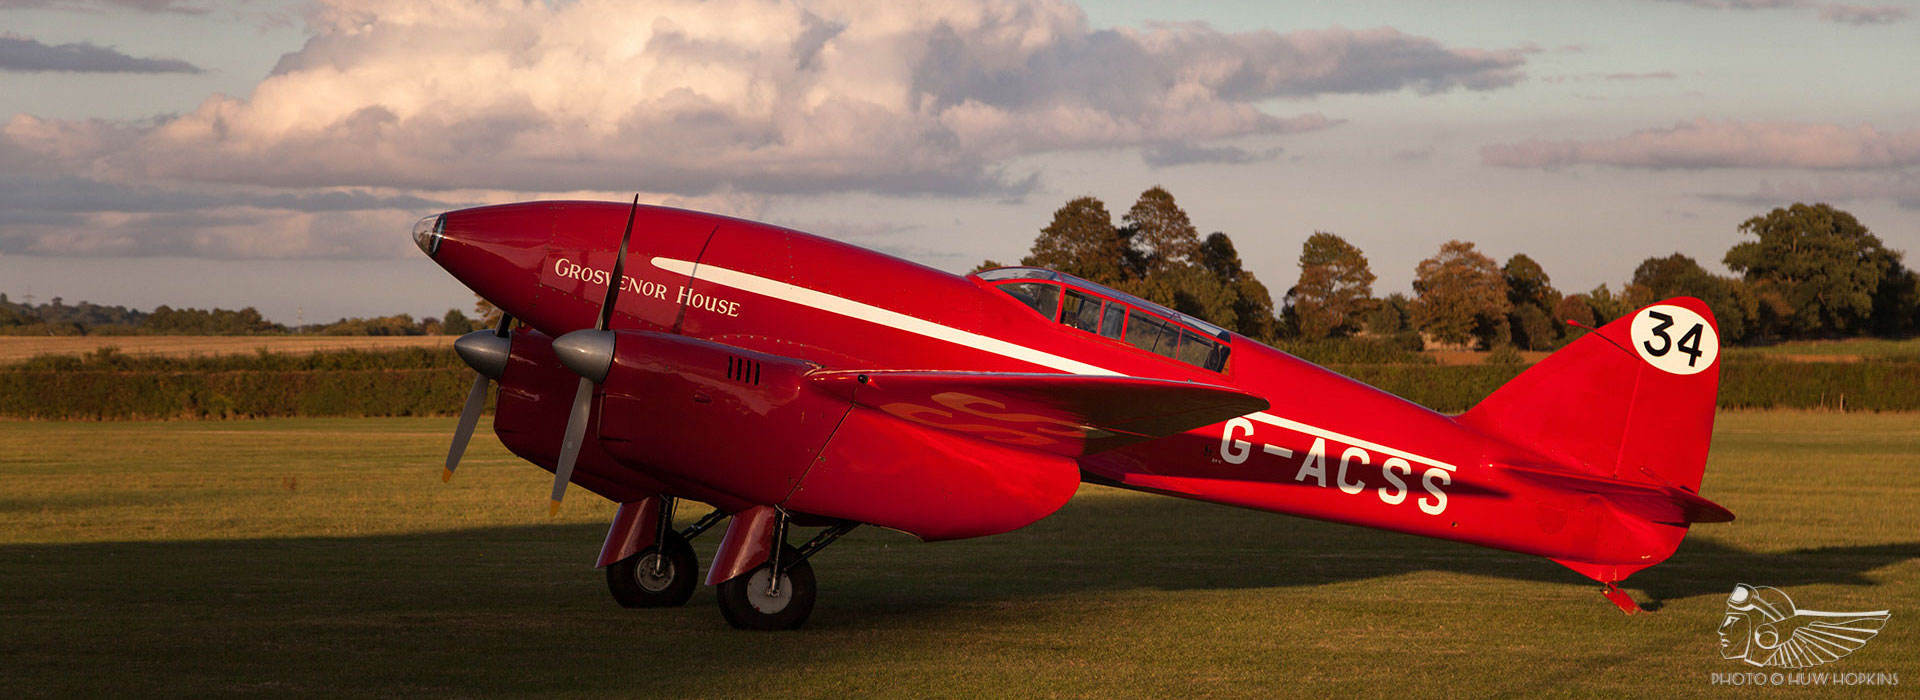 Shuttleworth Race Day 2016 honours aviation pioneers